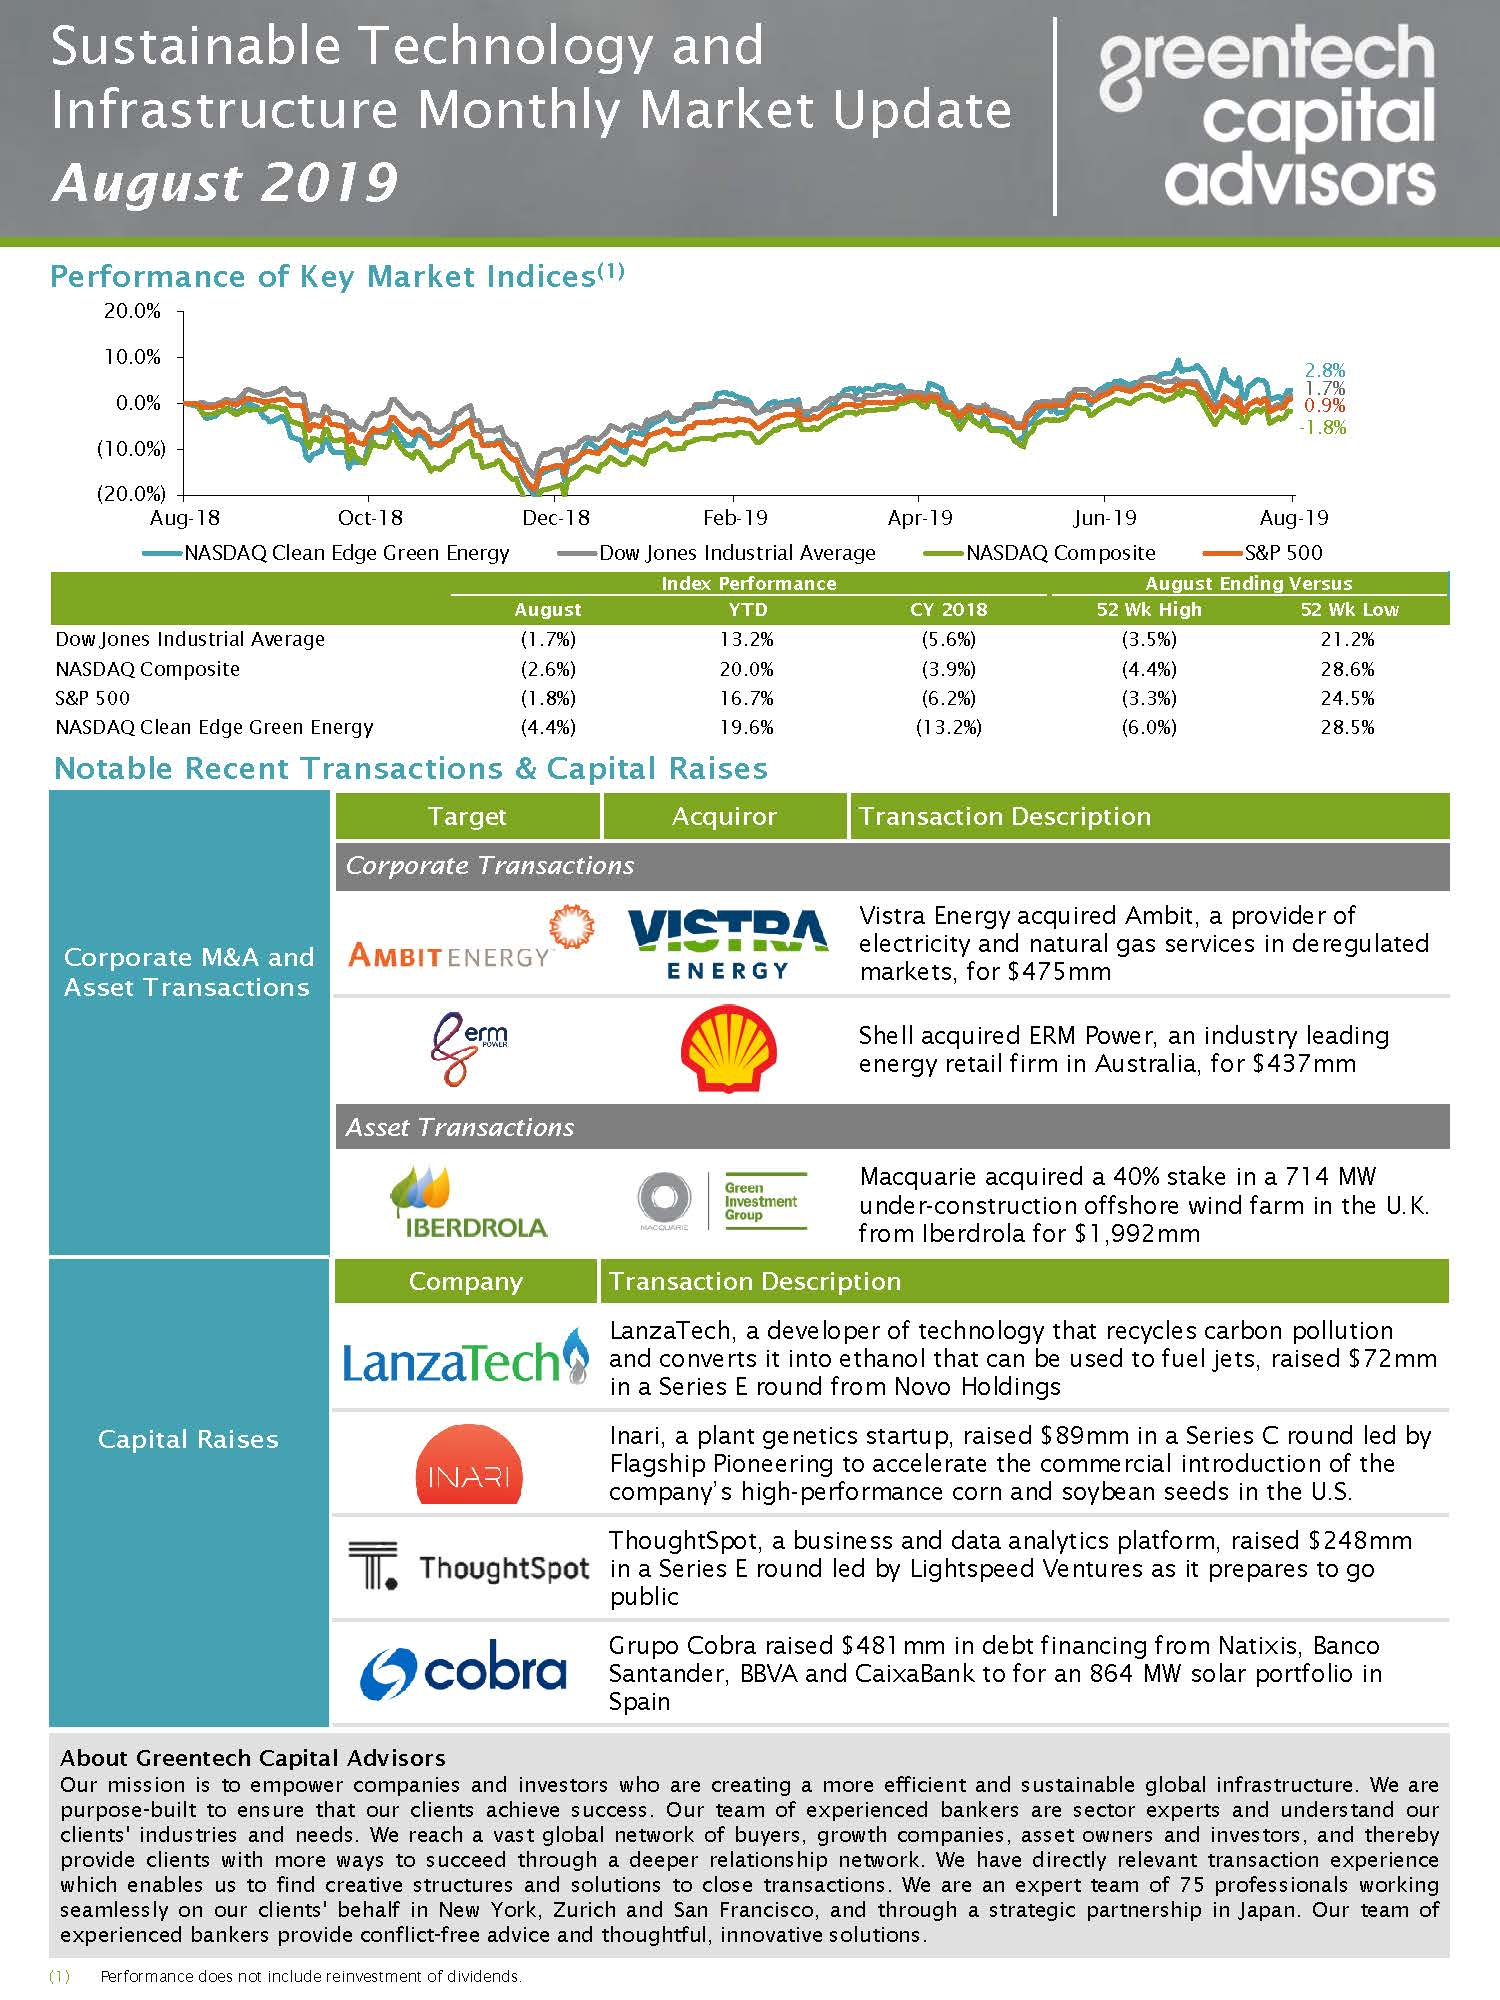 Sustainable Investing Monthly Market Update - August 2019